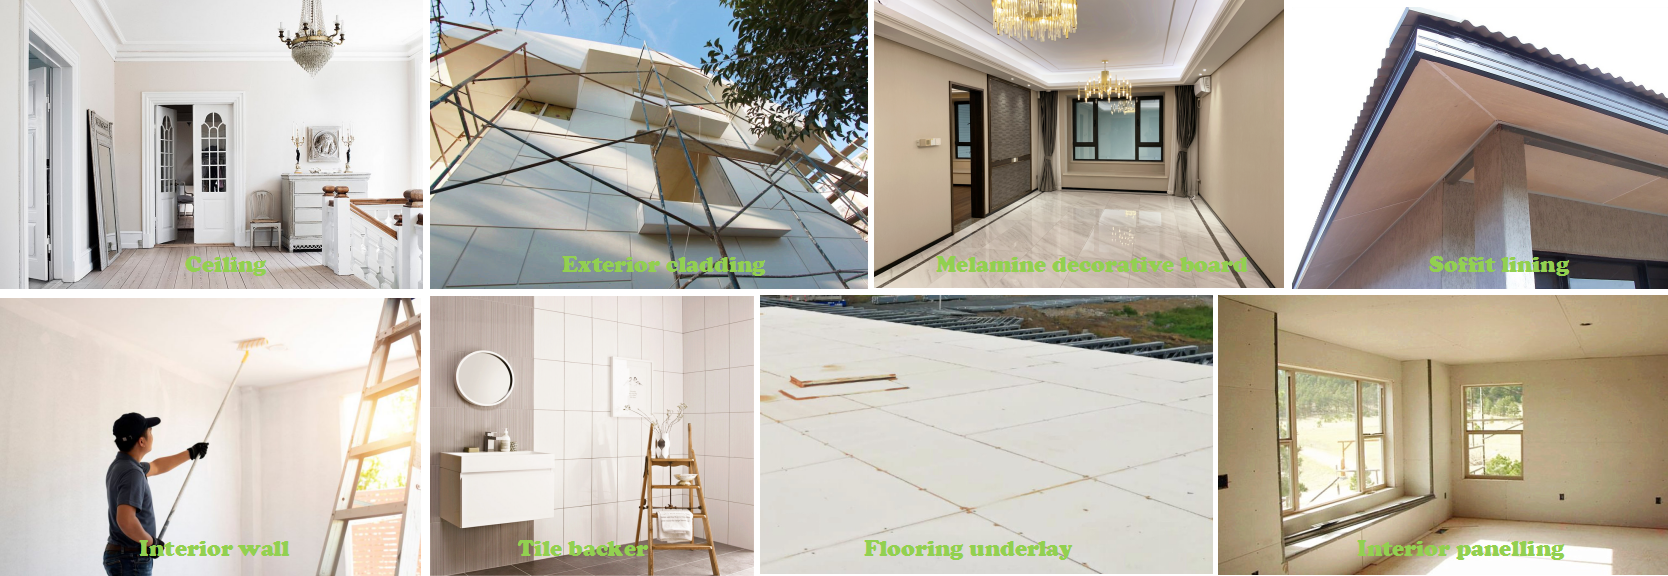 Wet Area mgo panel, Tile Backer Board,floor overlay MgO Cement Board